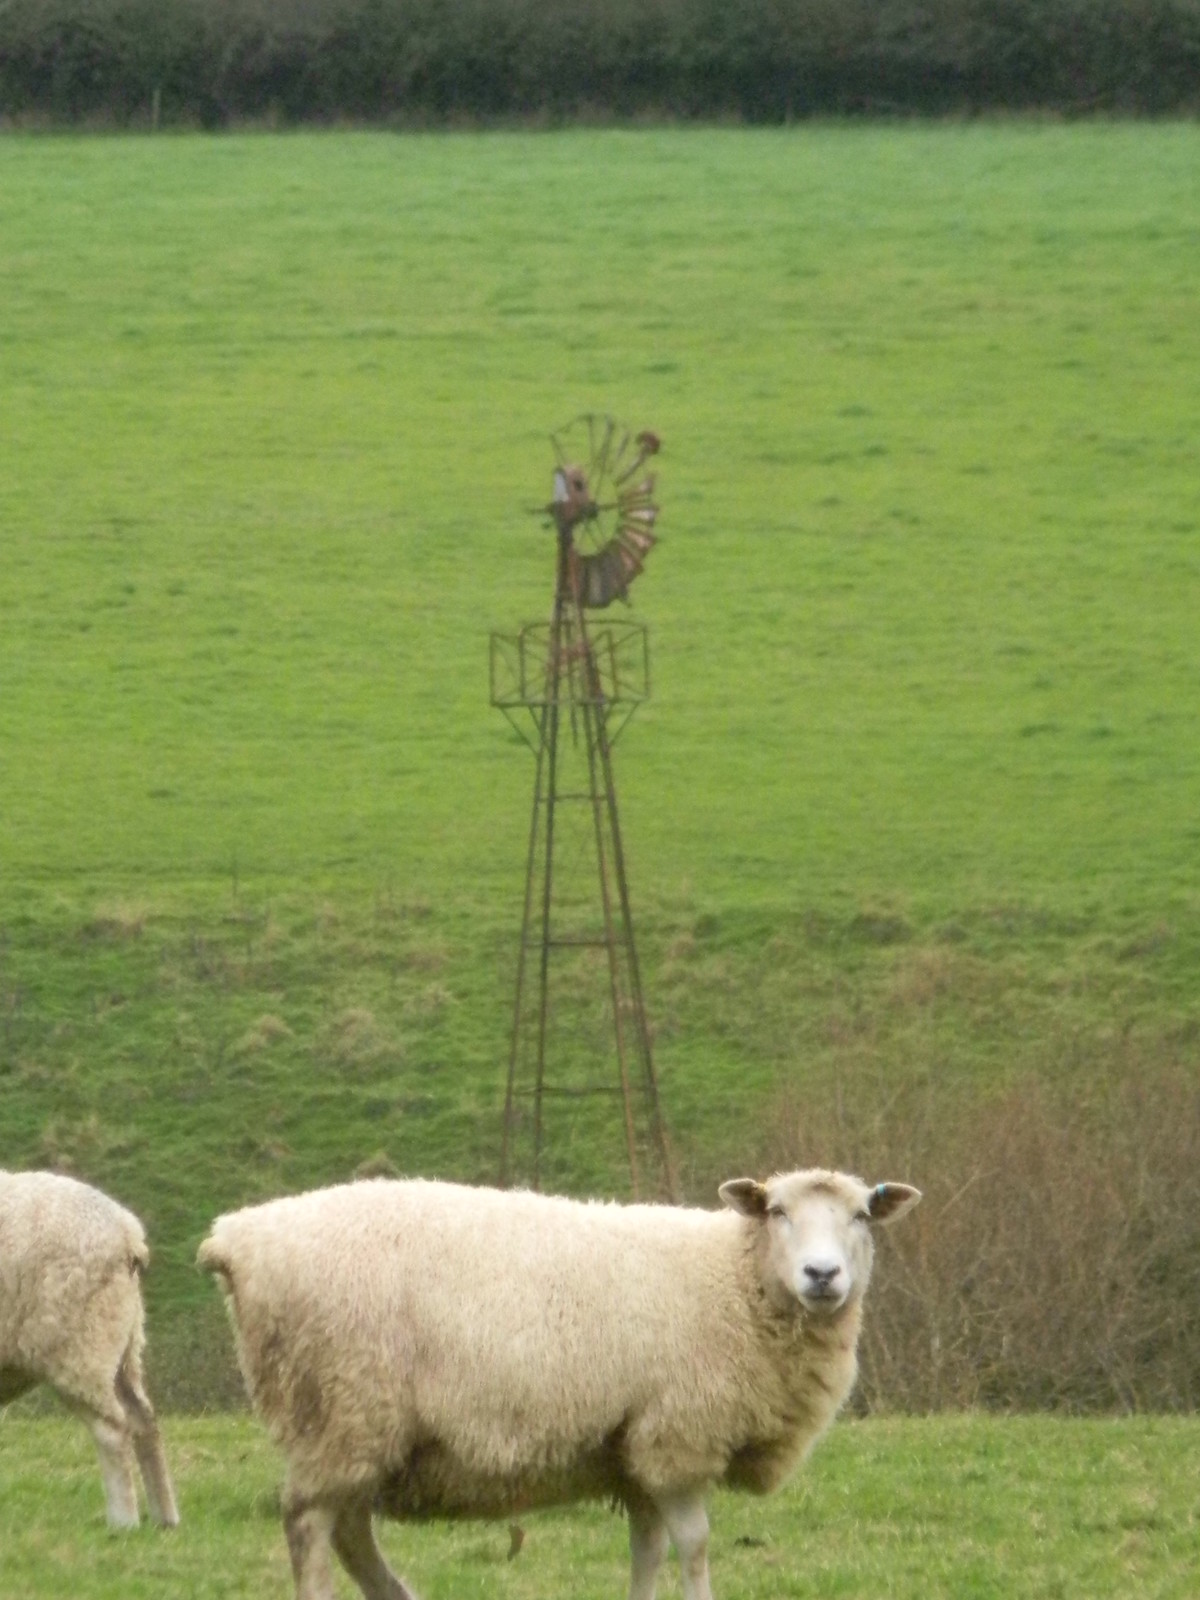 Sheep and windmilly thing Cowden to Hever